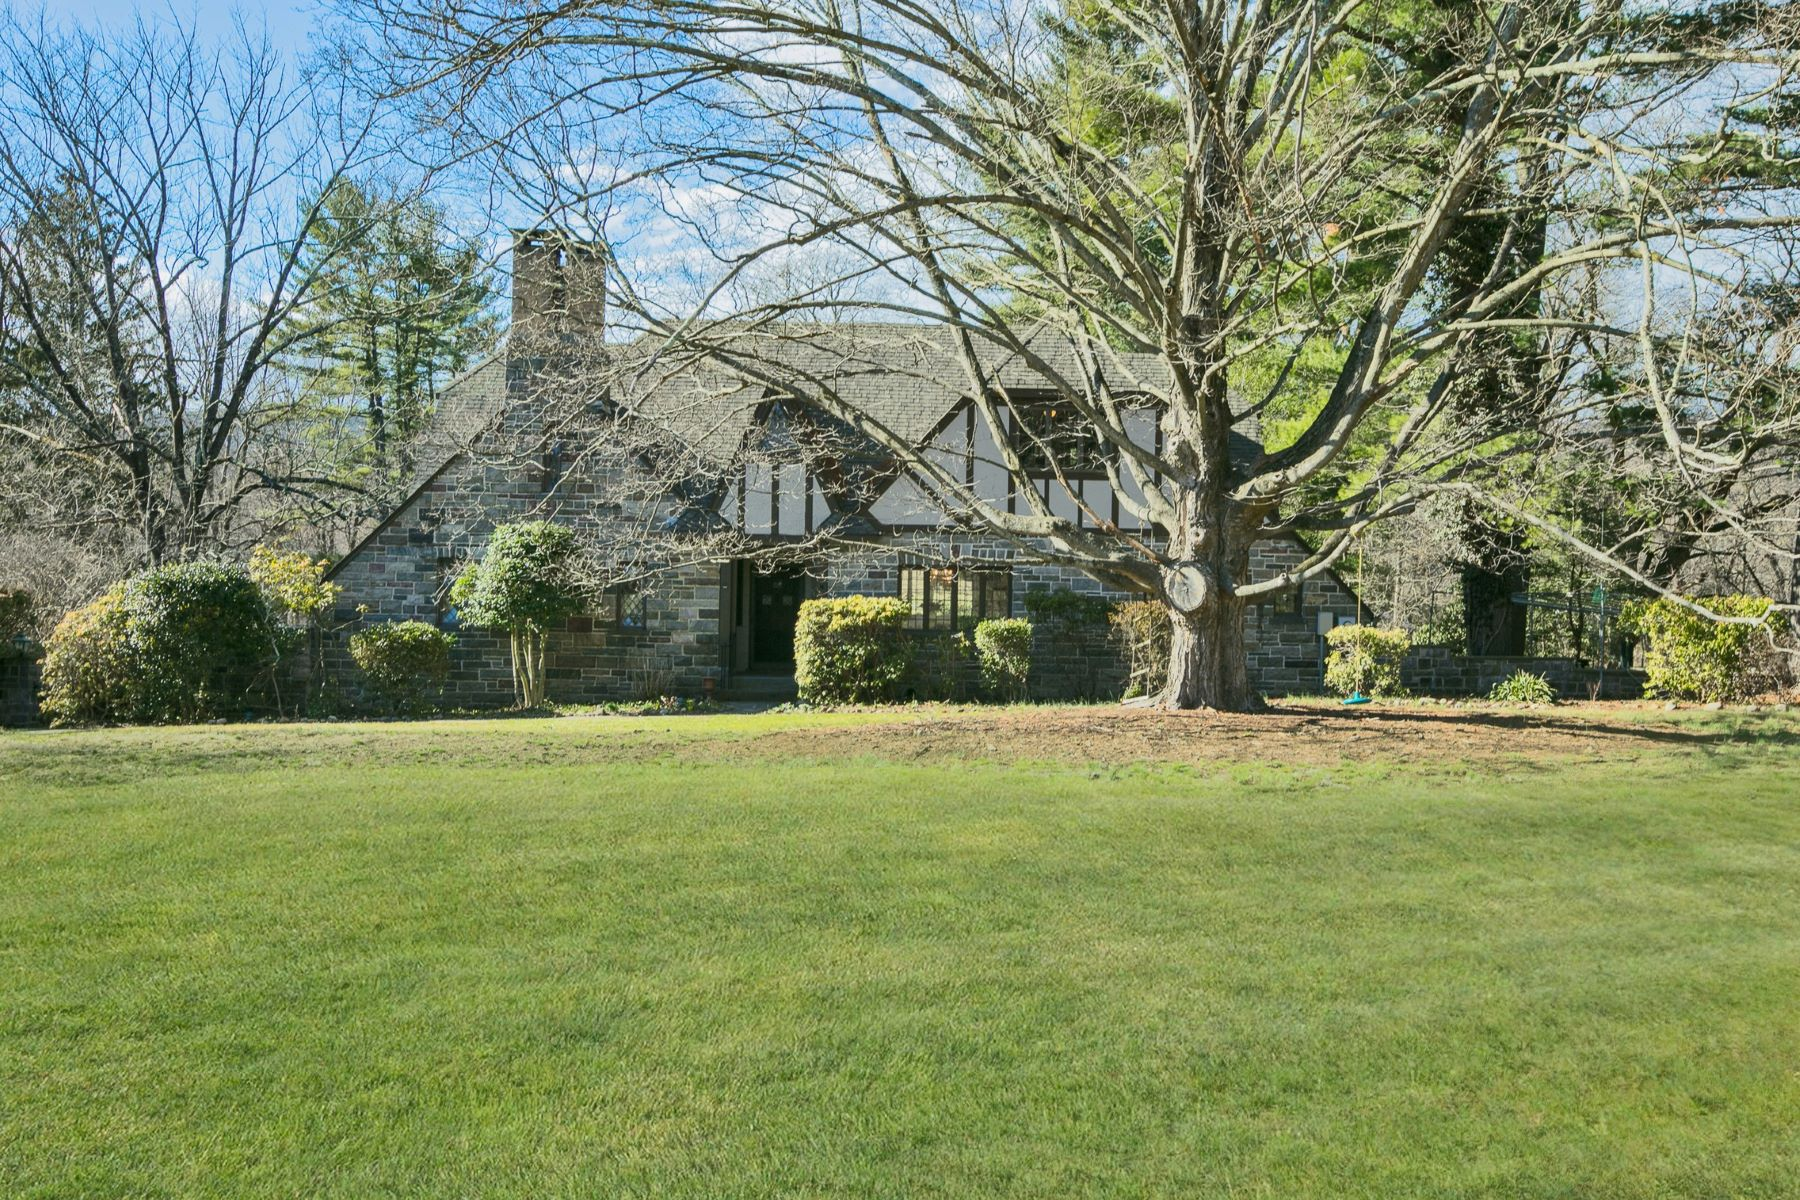 Single Family Home for Sale at c. 1925 Fieldstone Tudor 11 Mile Rd Montebello, New York, 10901 United States